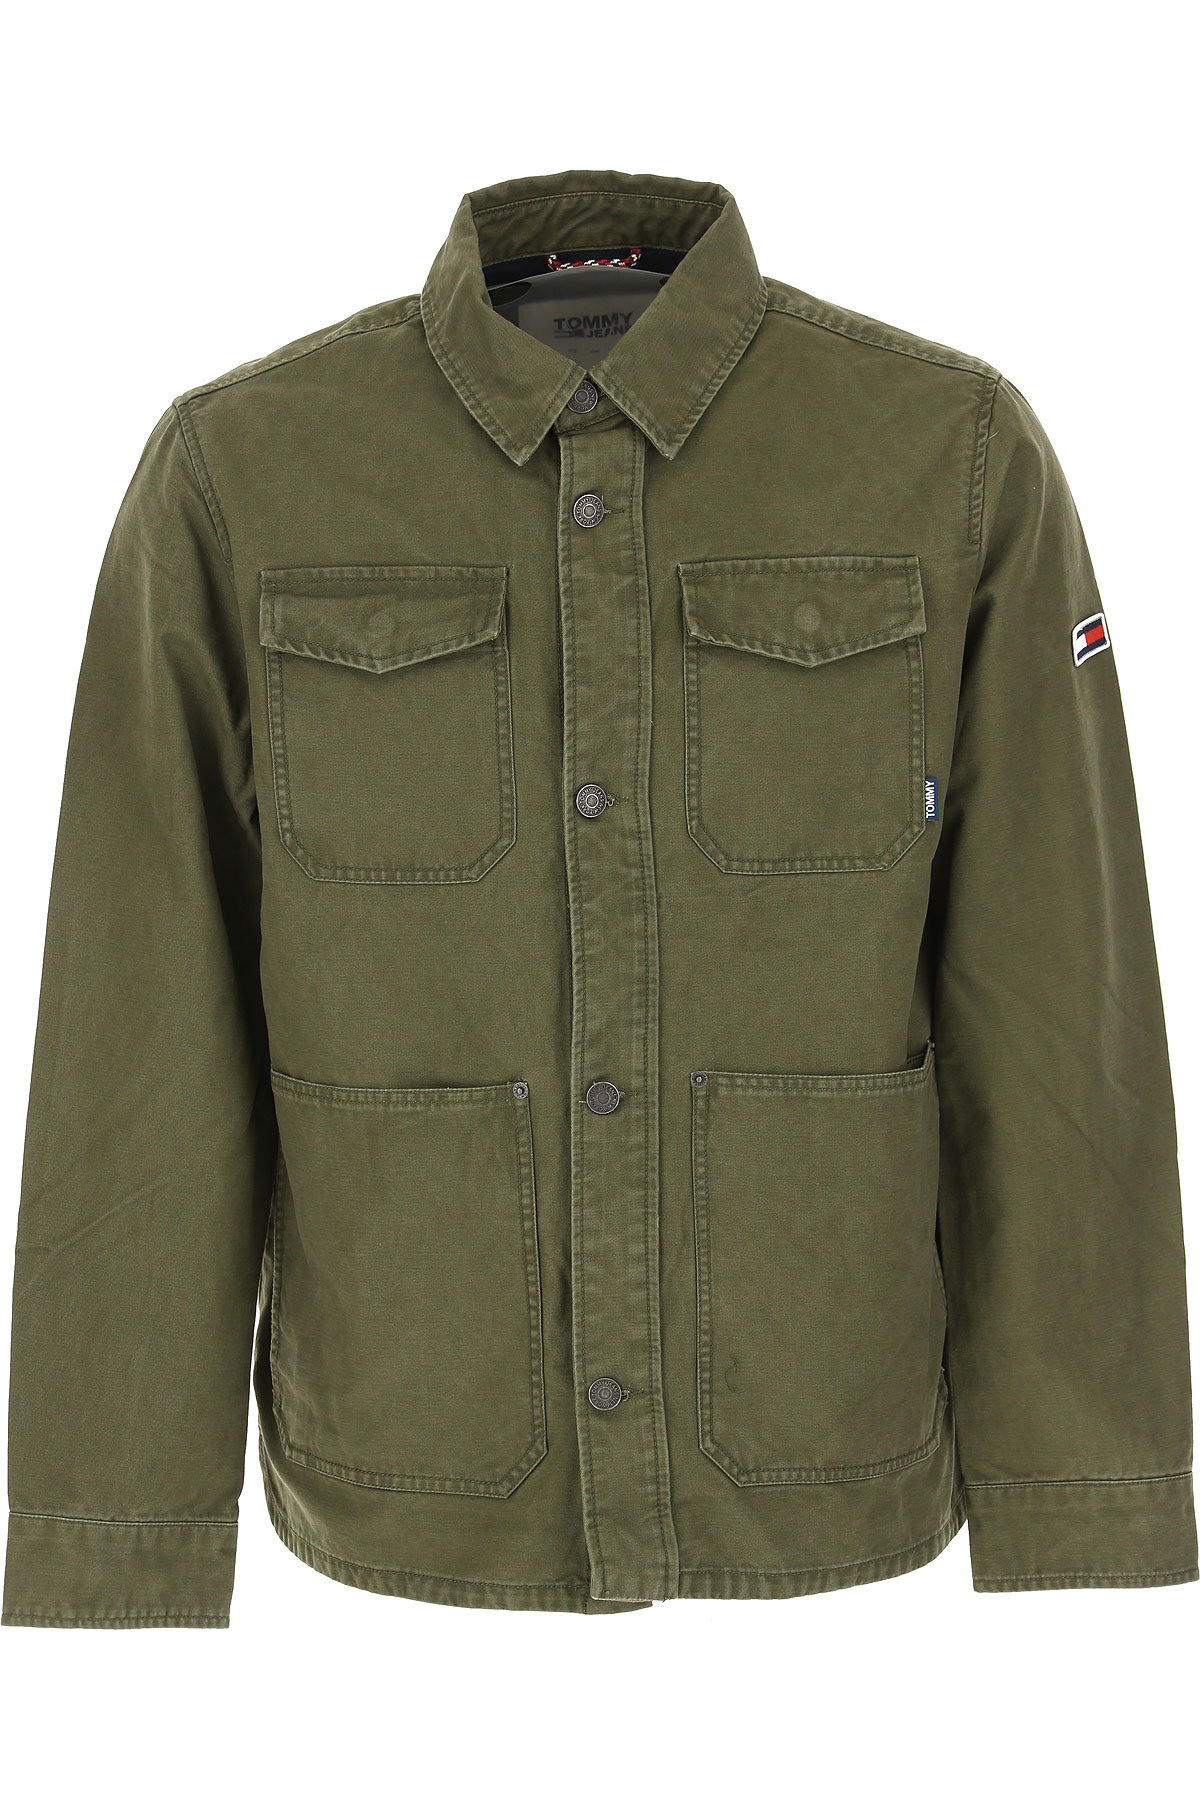 Tommy Hilfiger Jacket for Men On Sale, Olive Green, Cotton, 2019, L M S